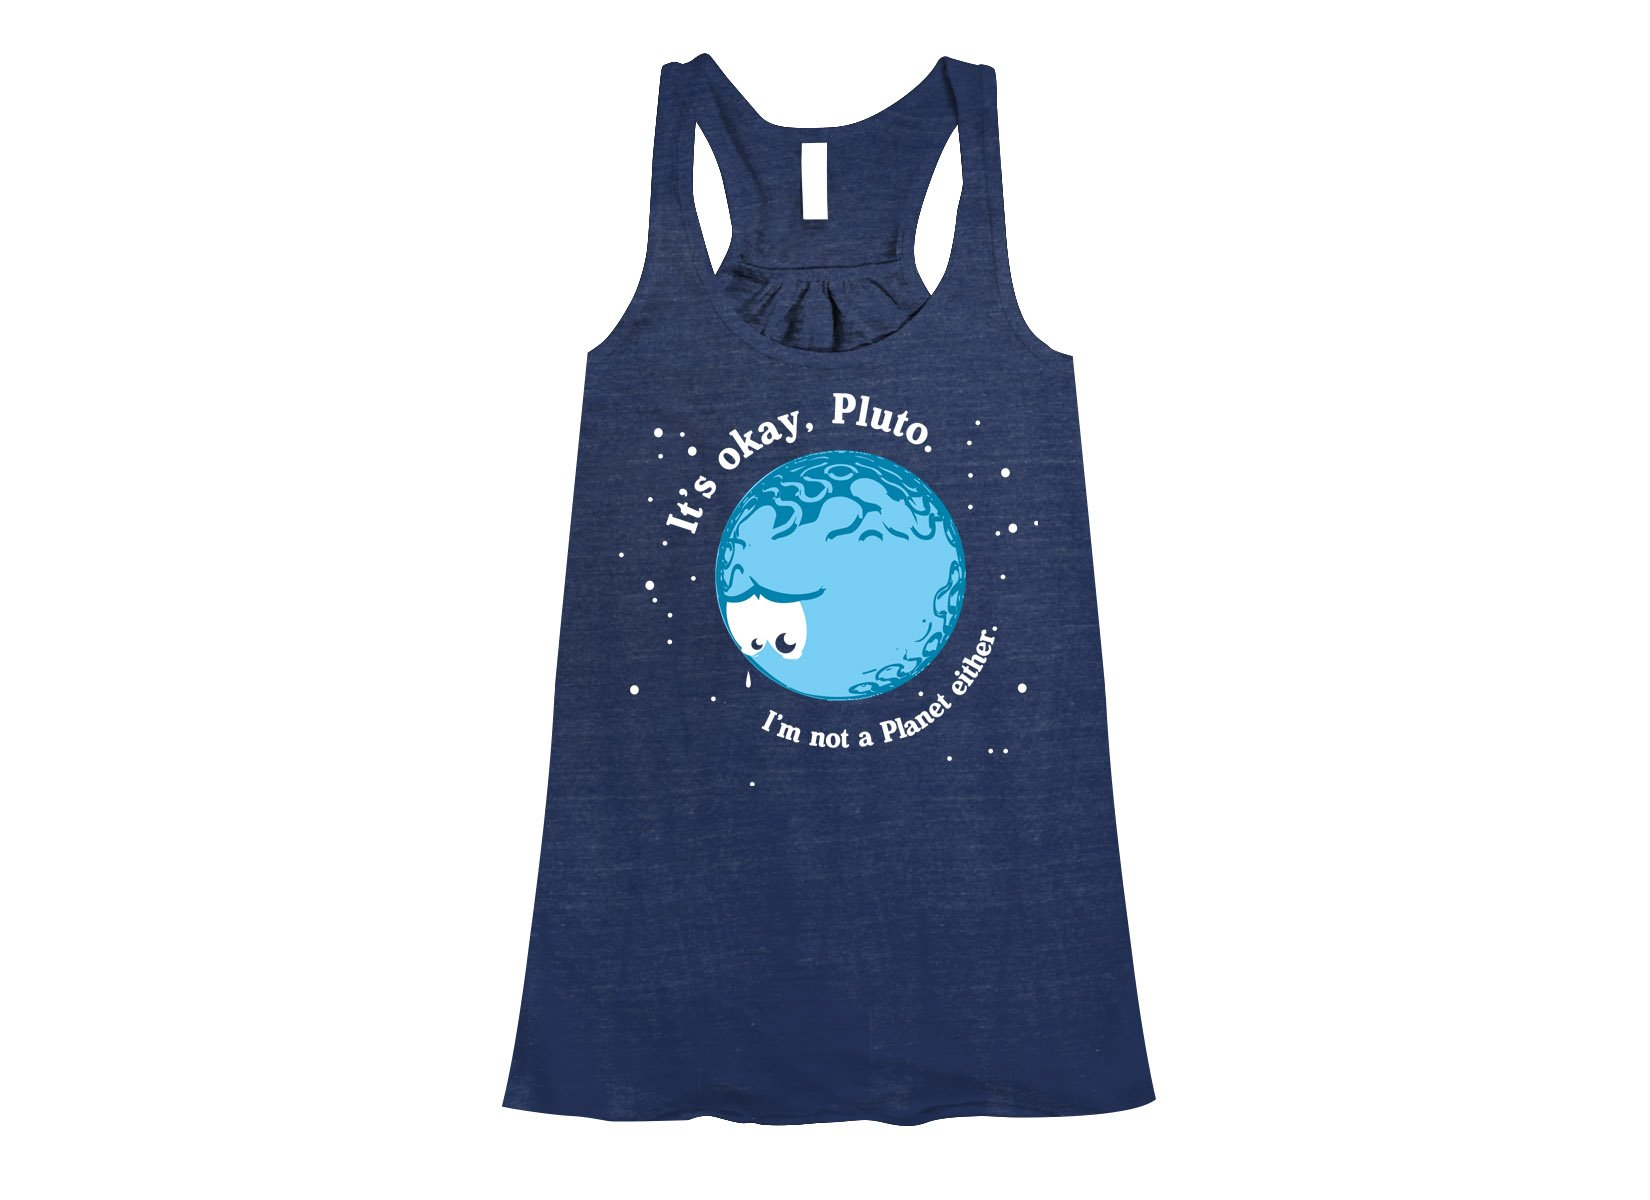 It's Okay Pluto on Womens Tanks T-Shirt